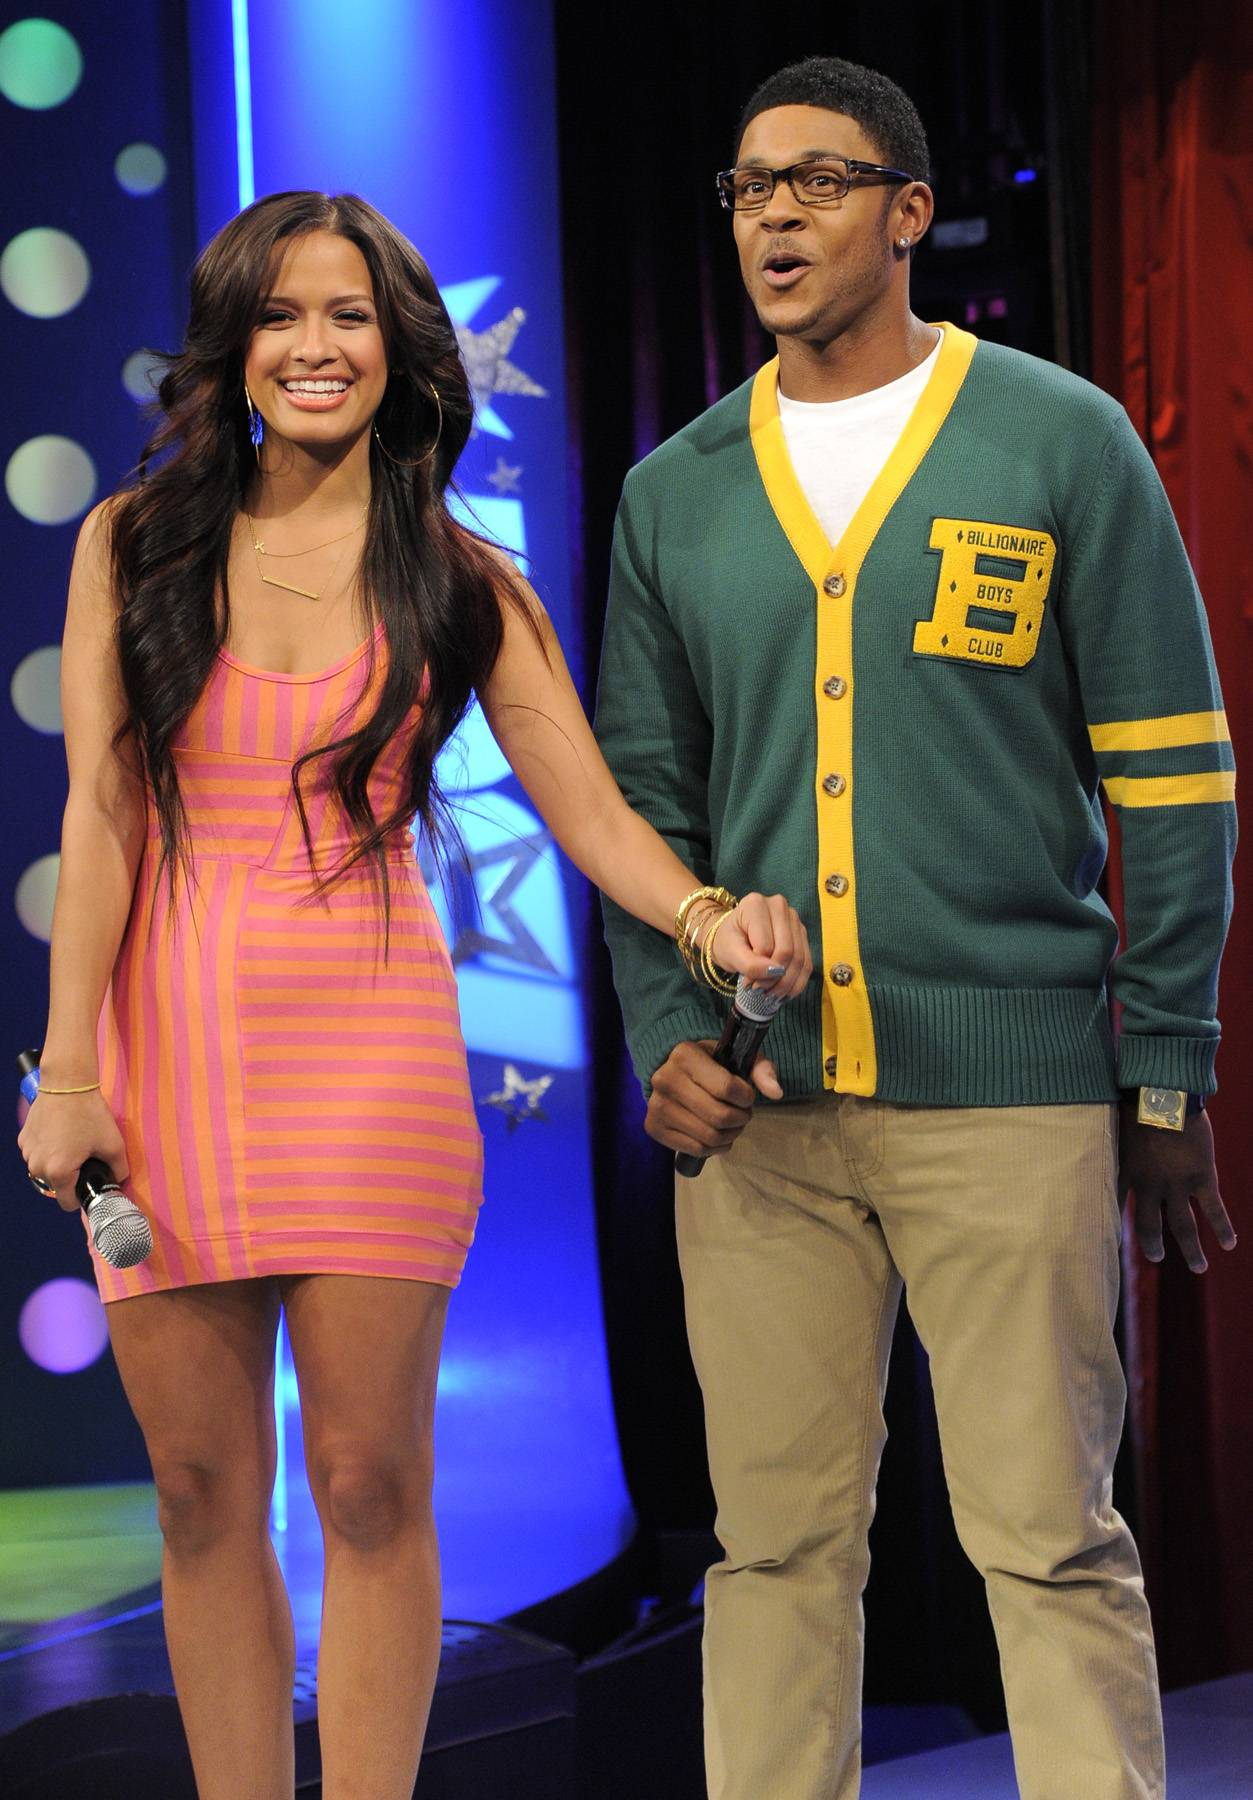 Pooch Is Excited - Pooch Hall and Rocsi Diaz at 106 & Park, April 12, 2012. (Photo: John Ricard / BET)